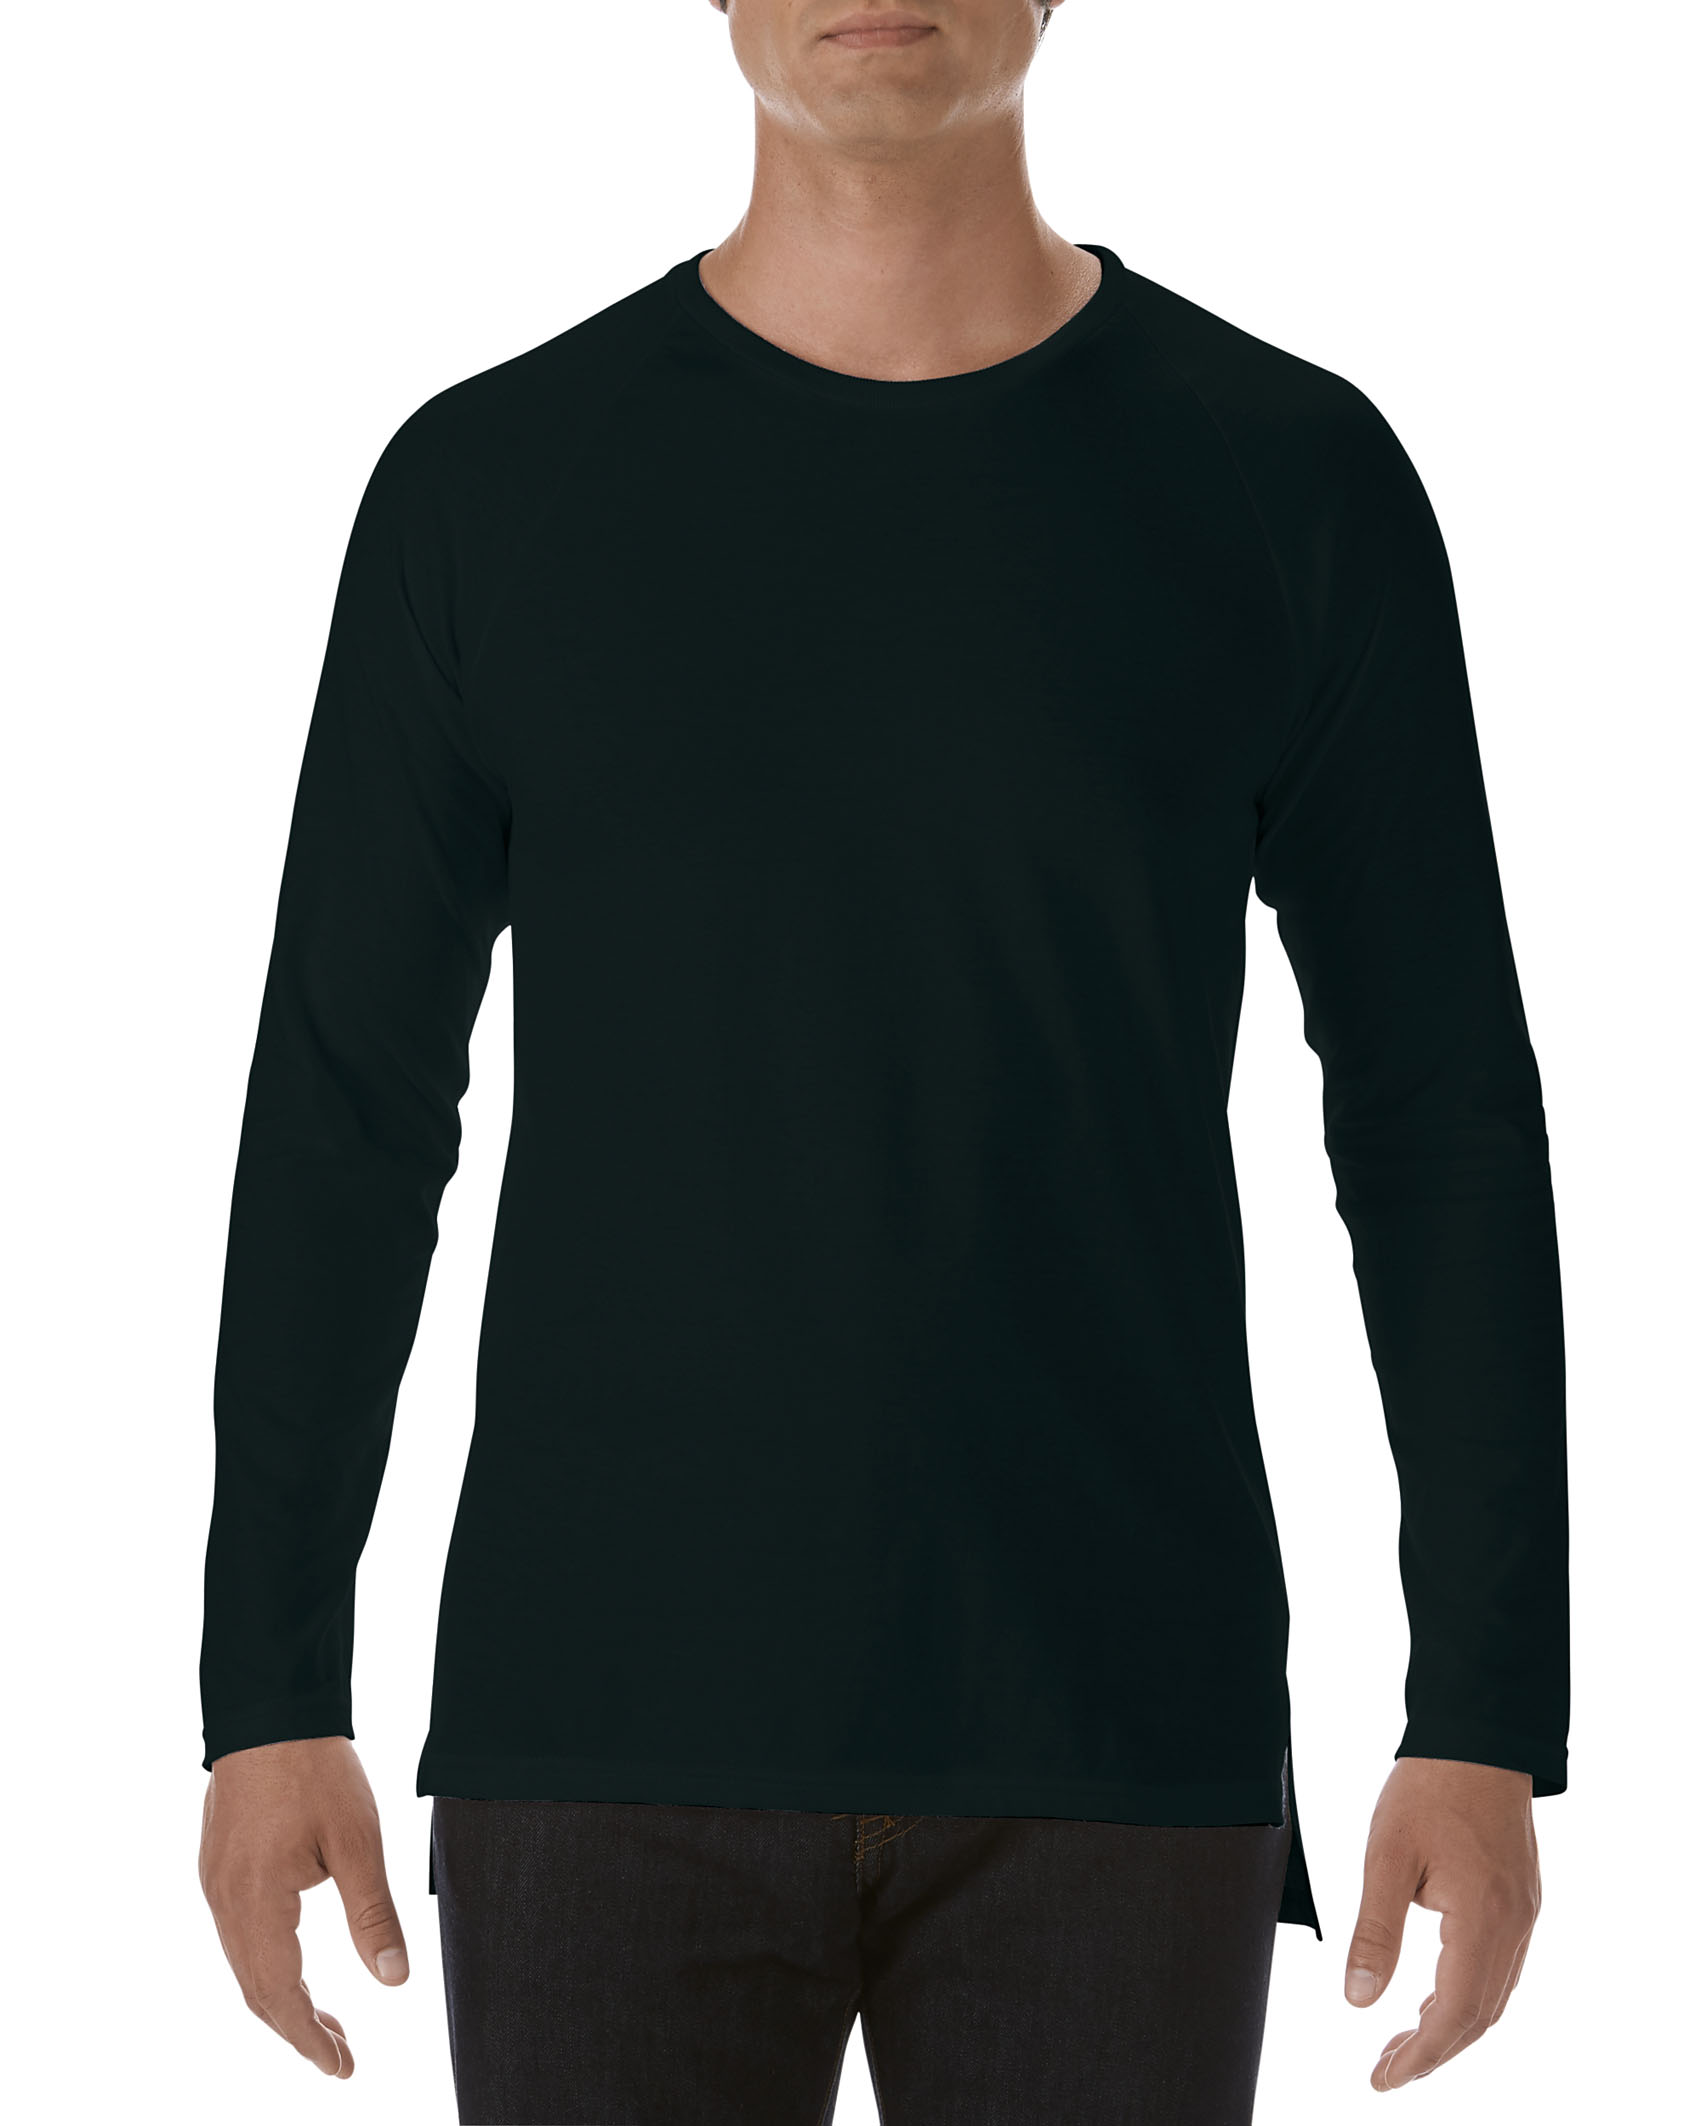 Anvil Fashion Basic Long & Lean Tee LS for him